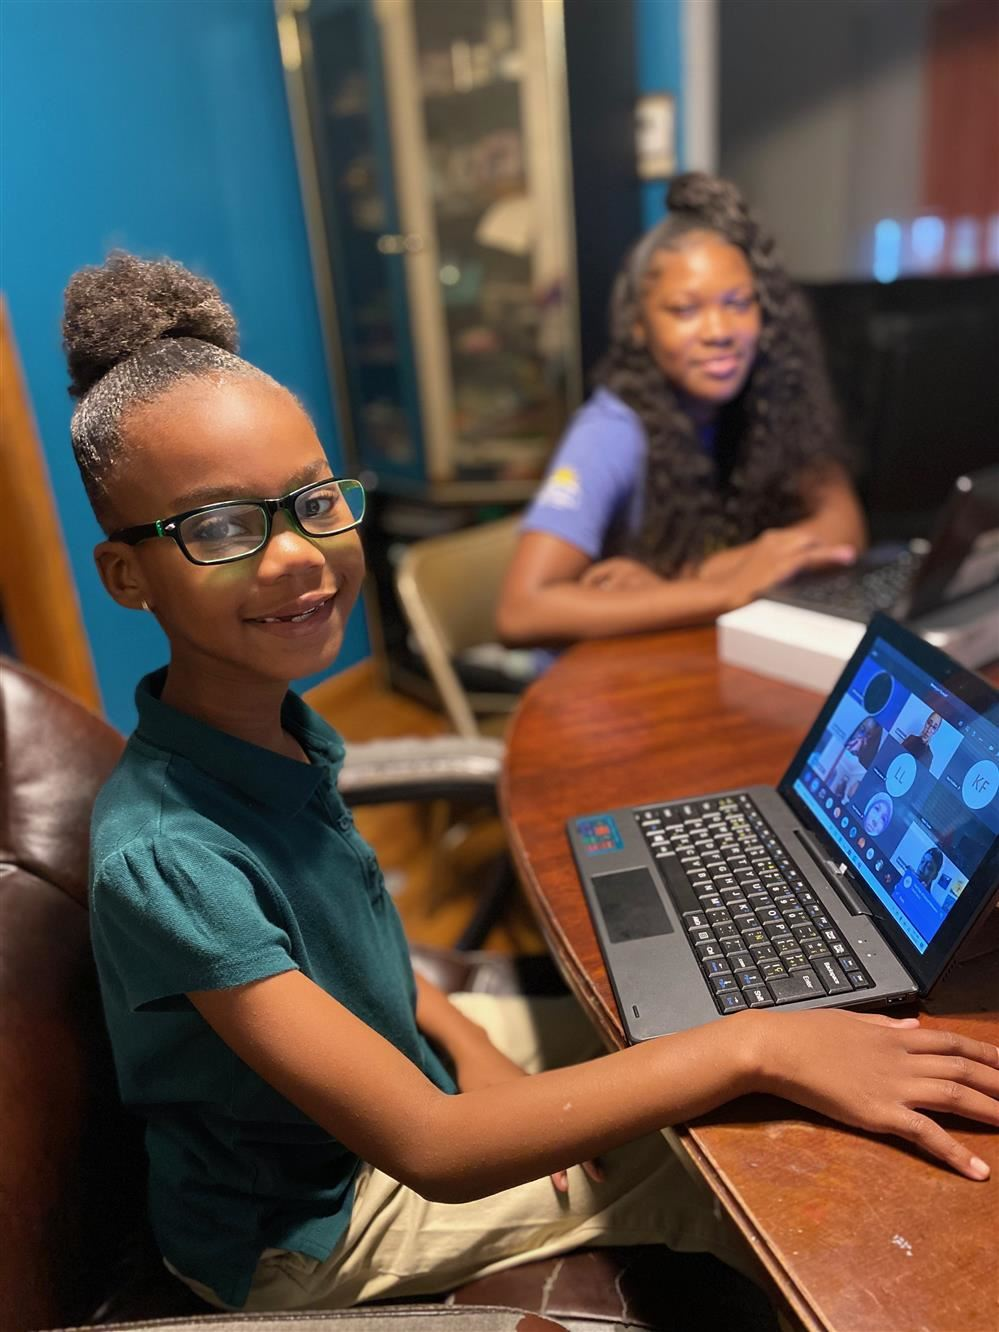 DPSCD adds resources to help students and families  navigate online learning platforms